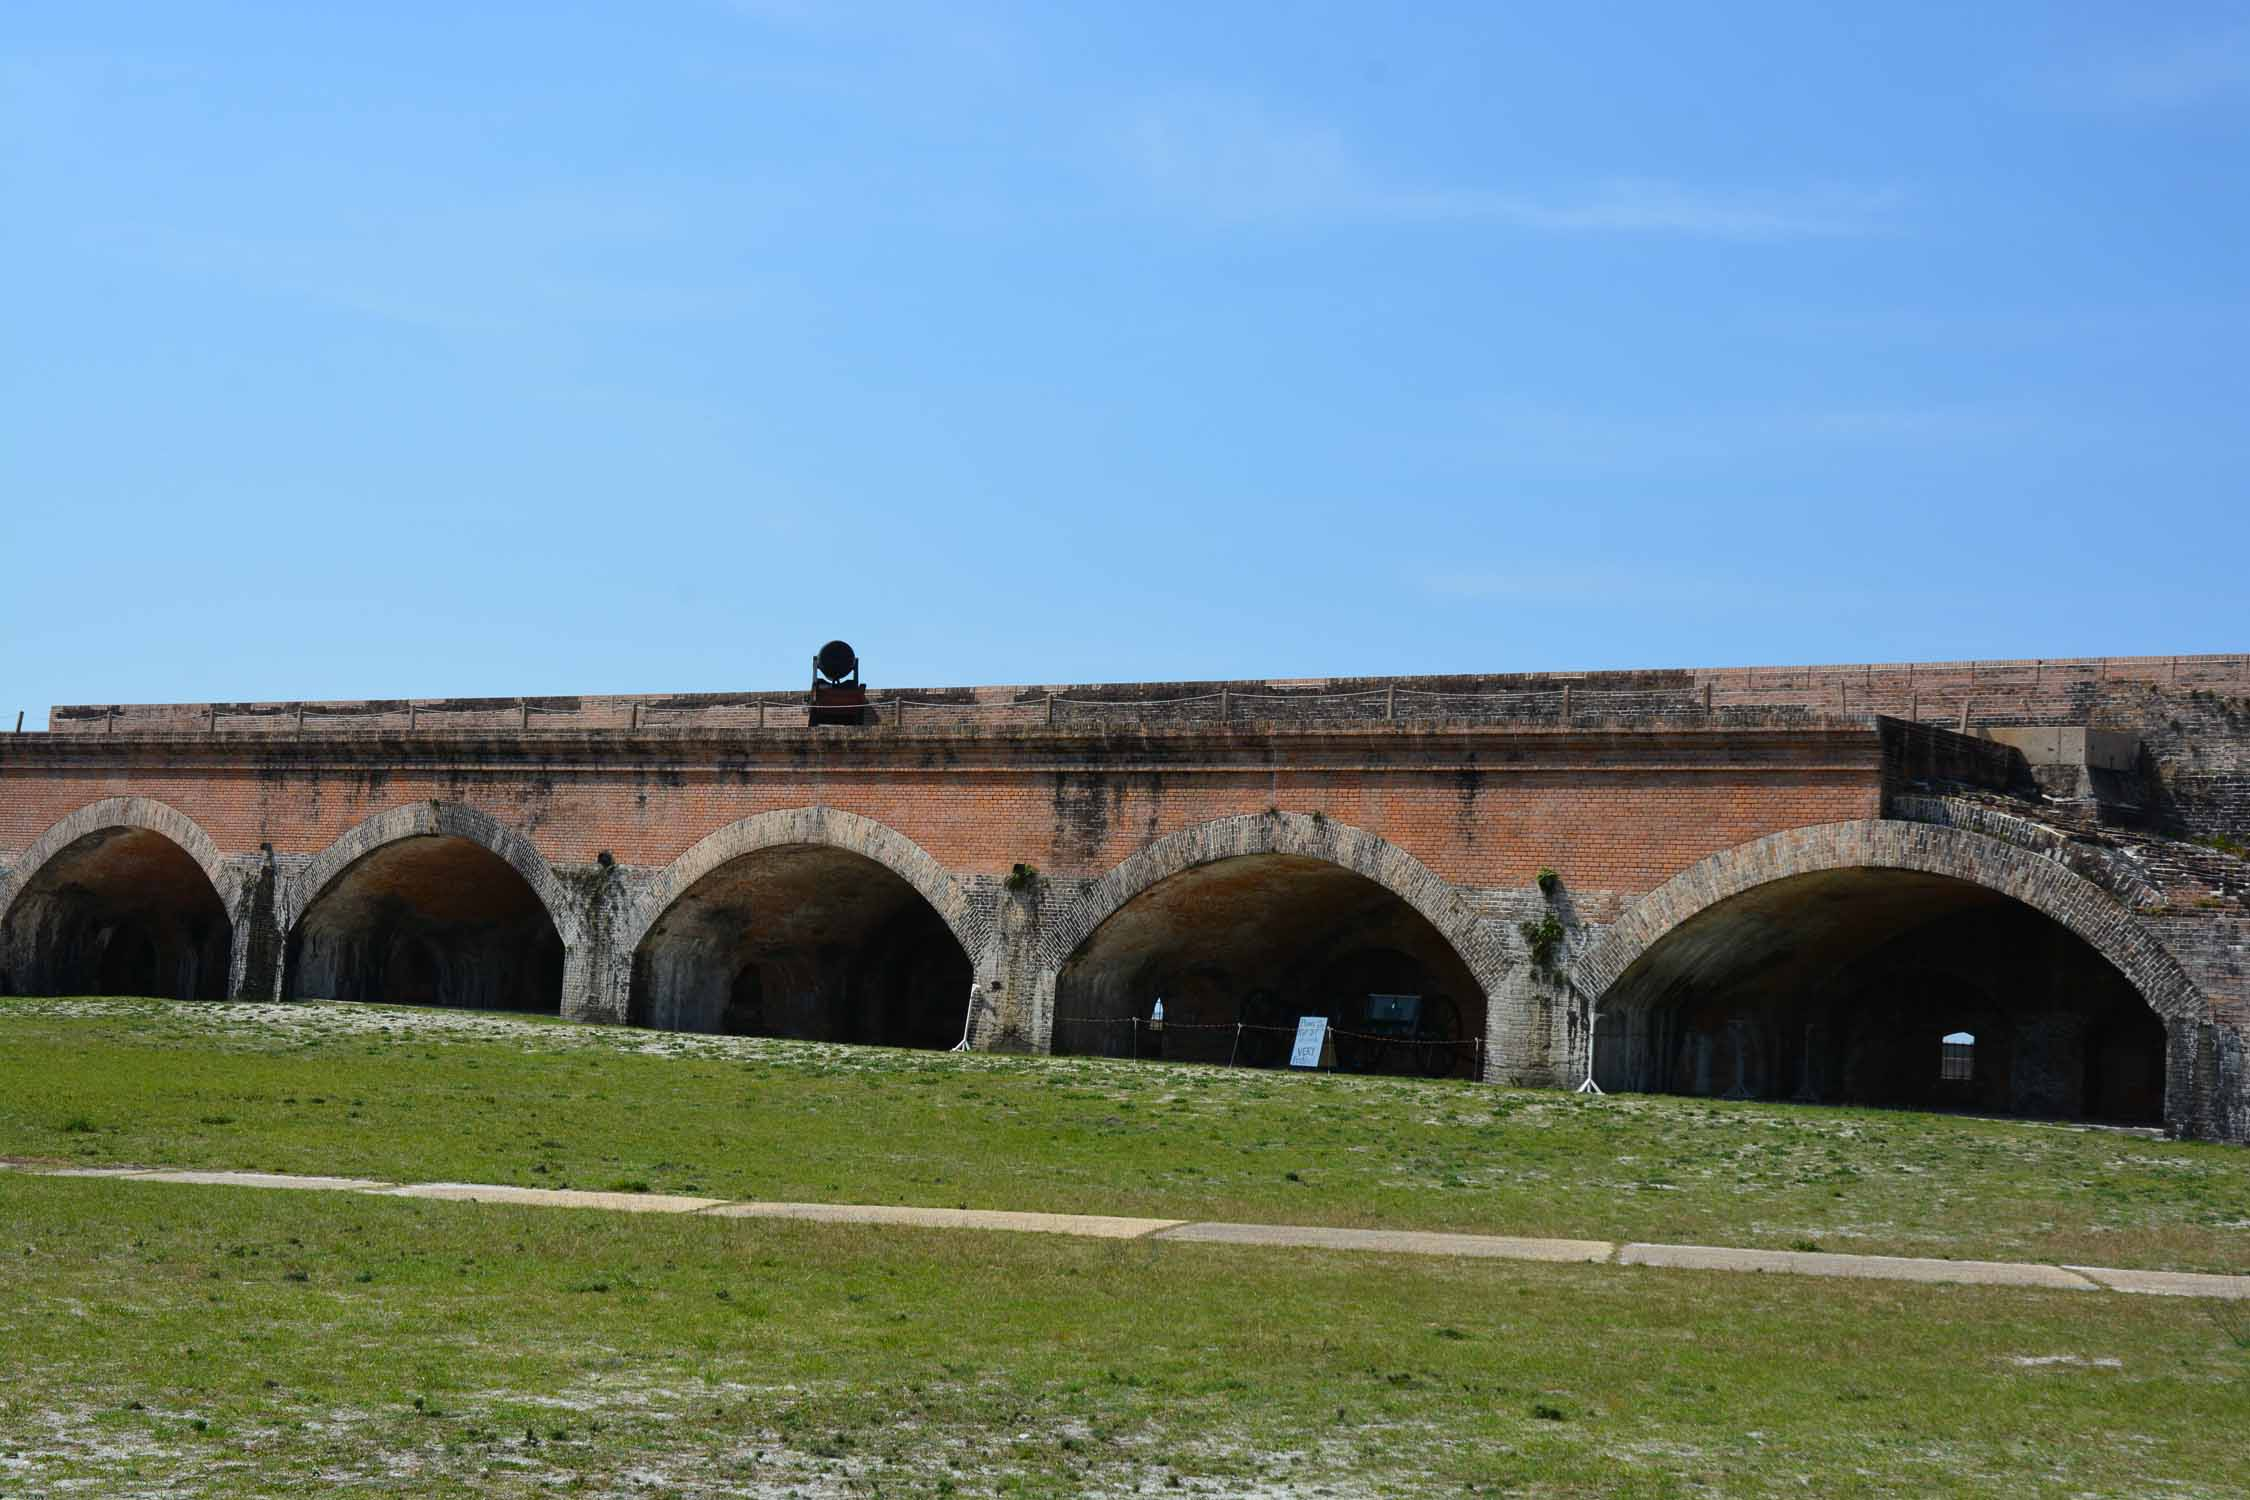 Fort Morgan has many of these buildings with arches